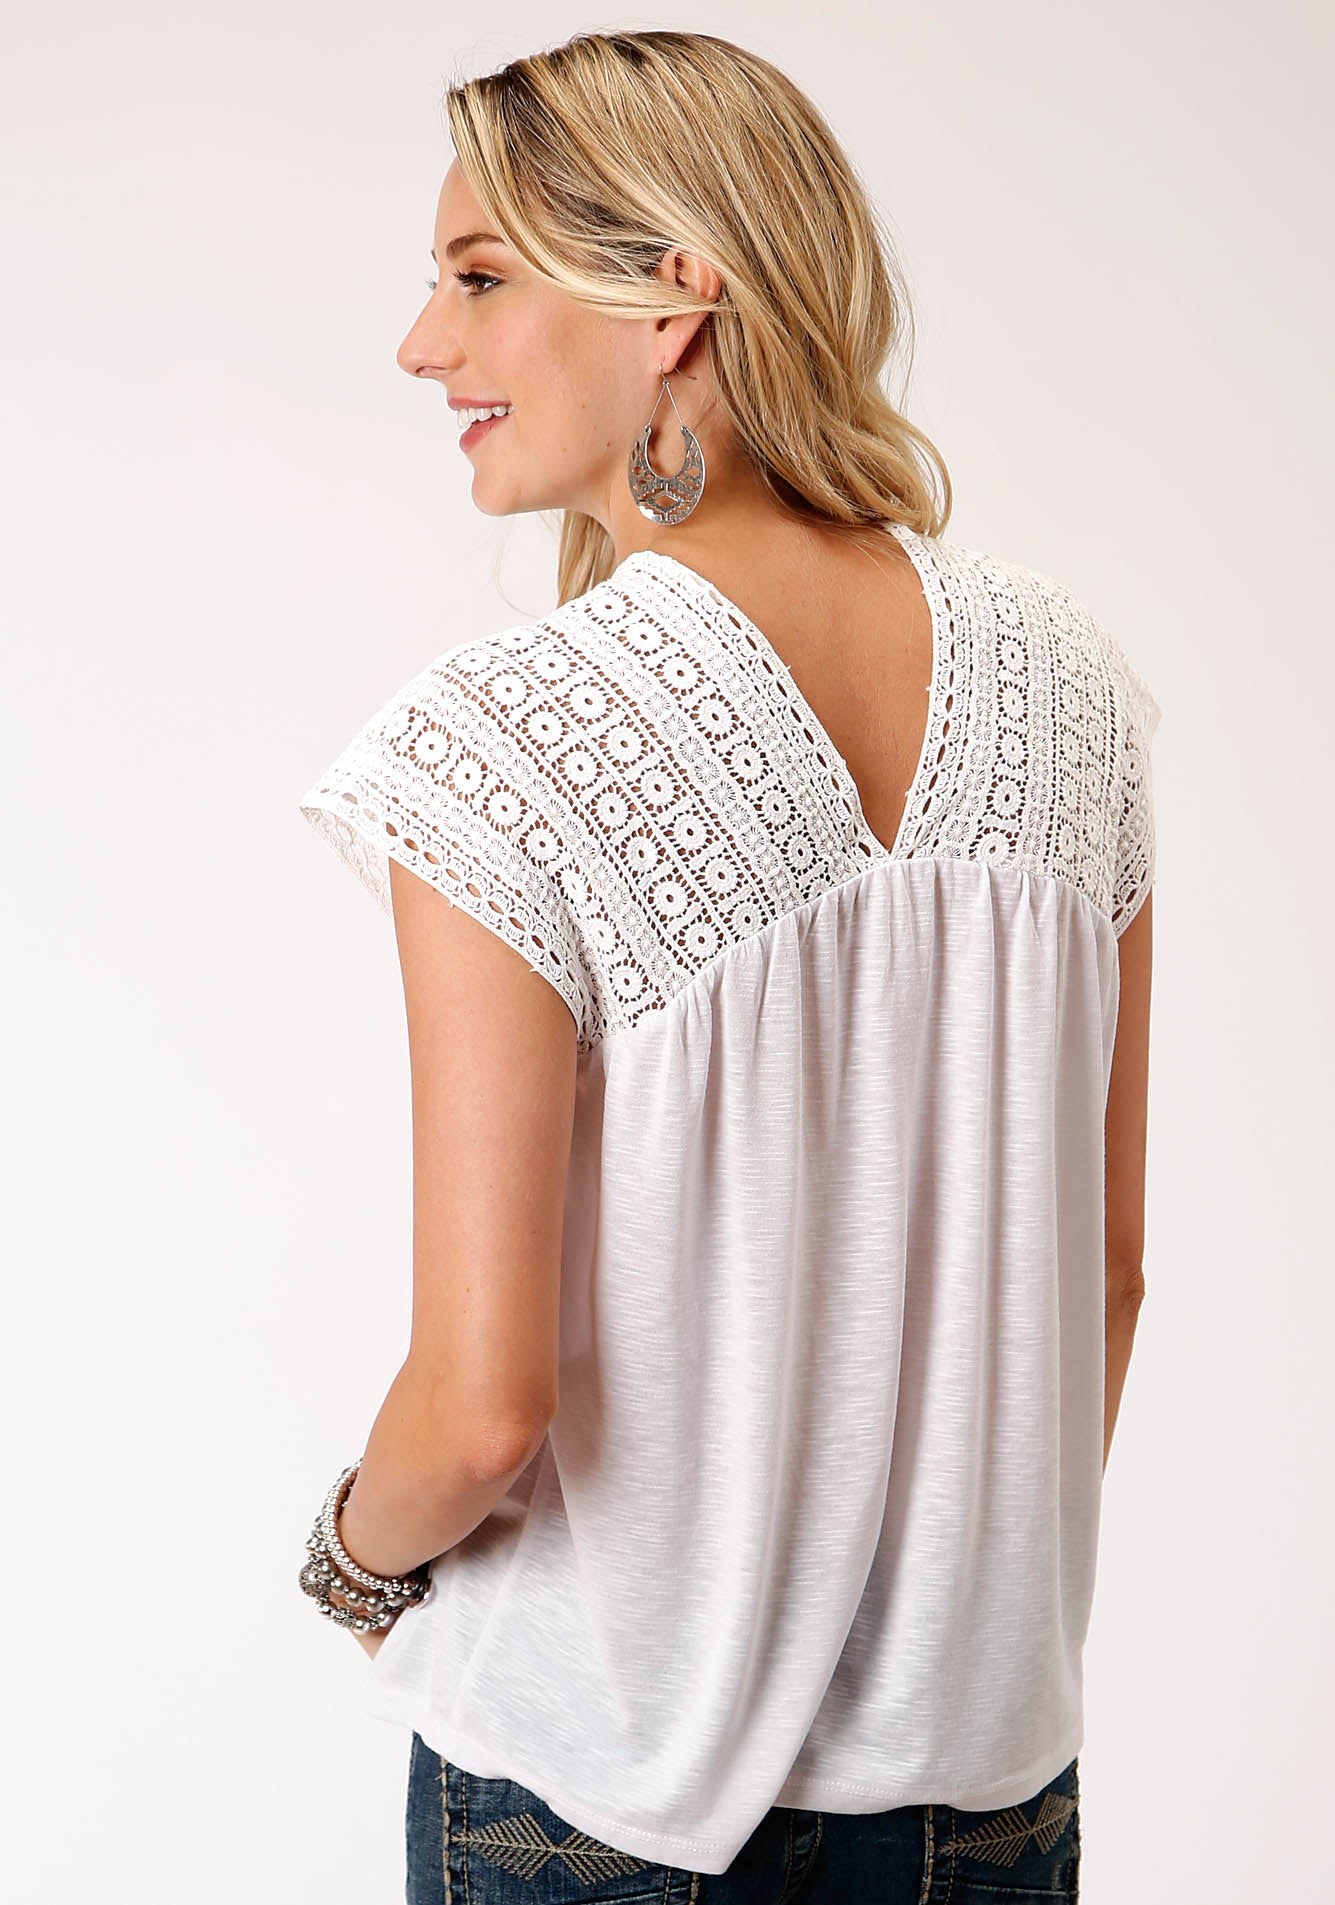 ROPER WOMENS WHITE 00214 POLY RAYON SLUB JERSEY TOP STUDIO WEST- SUMMER SOLSTICE SHORT SLEEVE